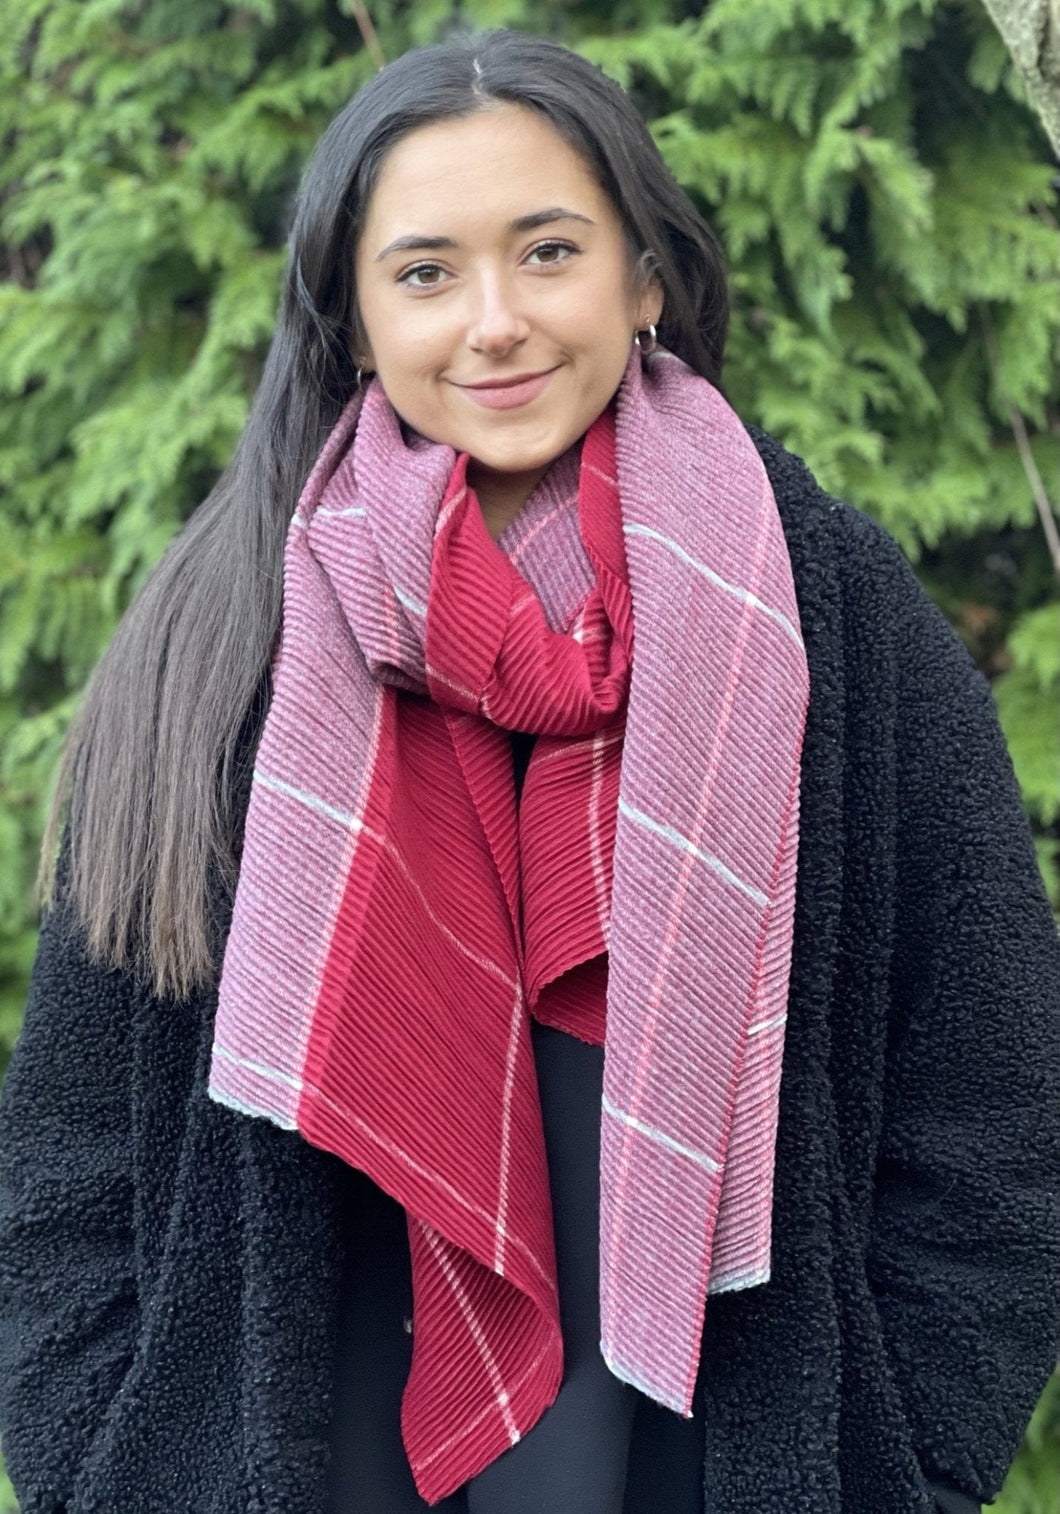 Crinkle Check Reversible Scarf - Red/Grey - LavenderLime